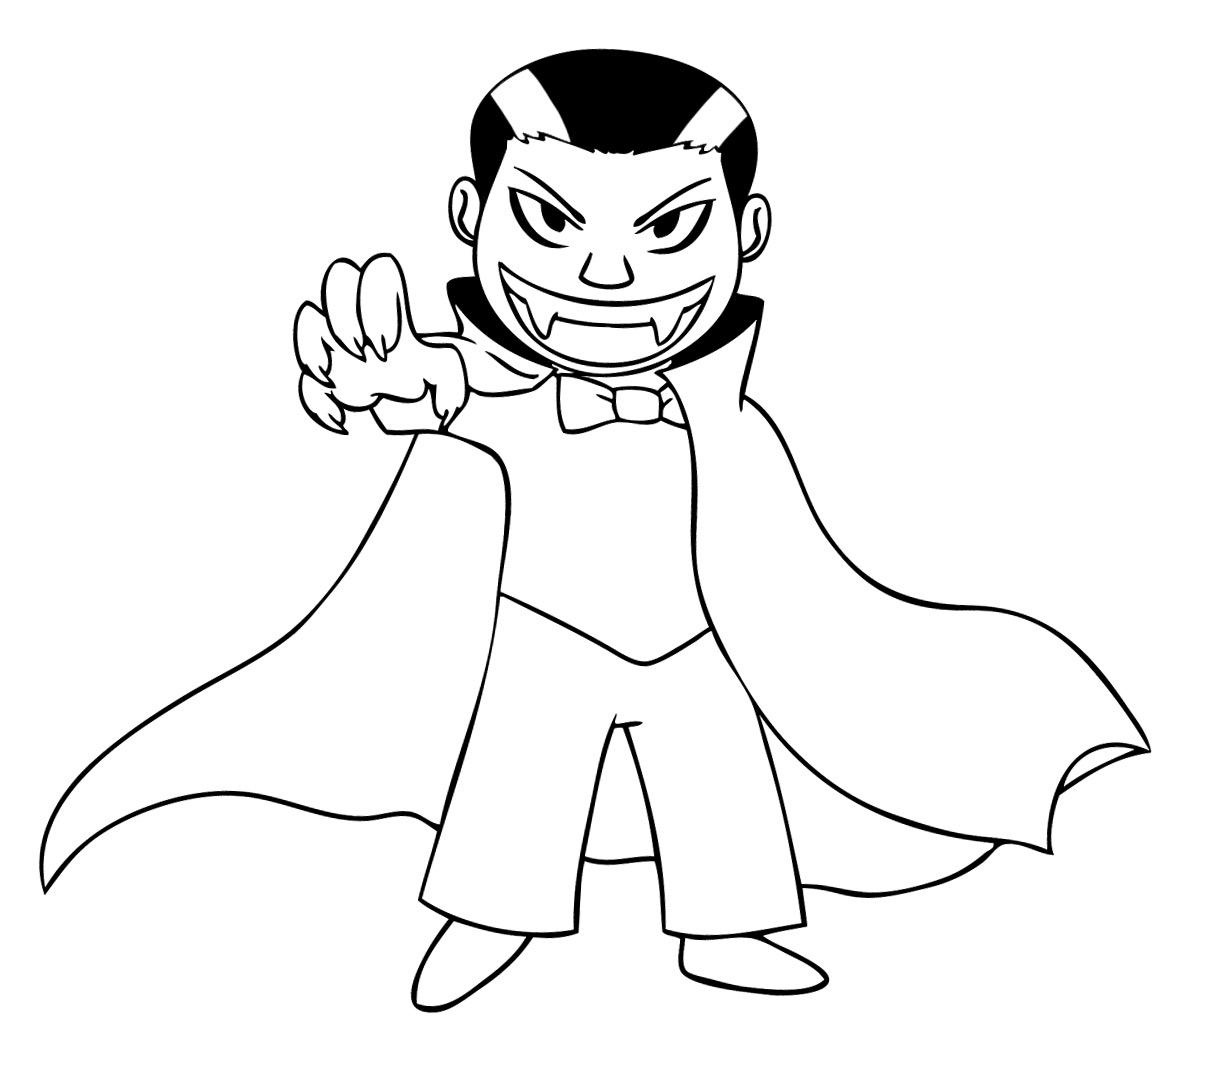 1222x1071 Cartoon Vampire Coloring Pages